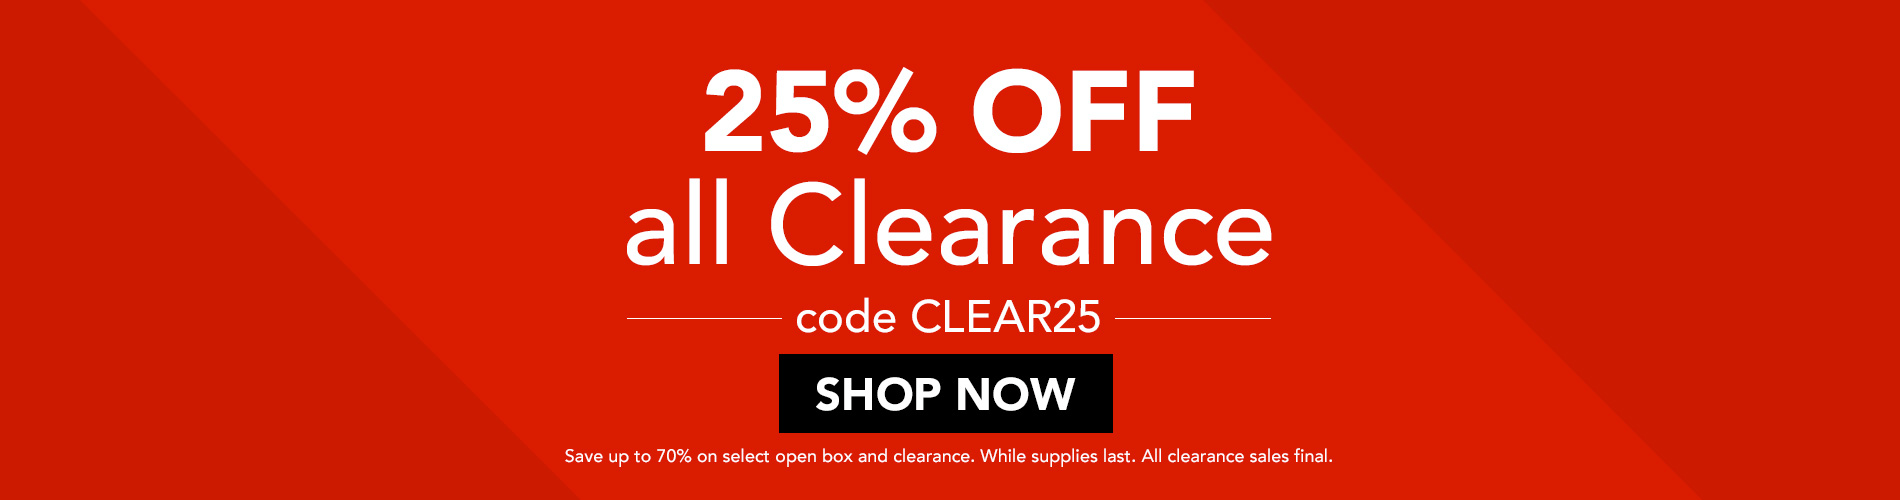 25% OFF all Clearance! Code CLEAR25. Save up to 70% on select open box and clearance. While supplies last. All clearance sales final.